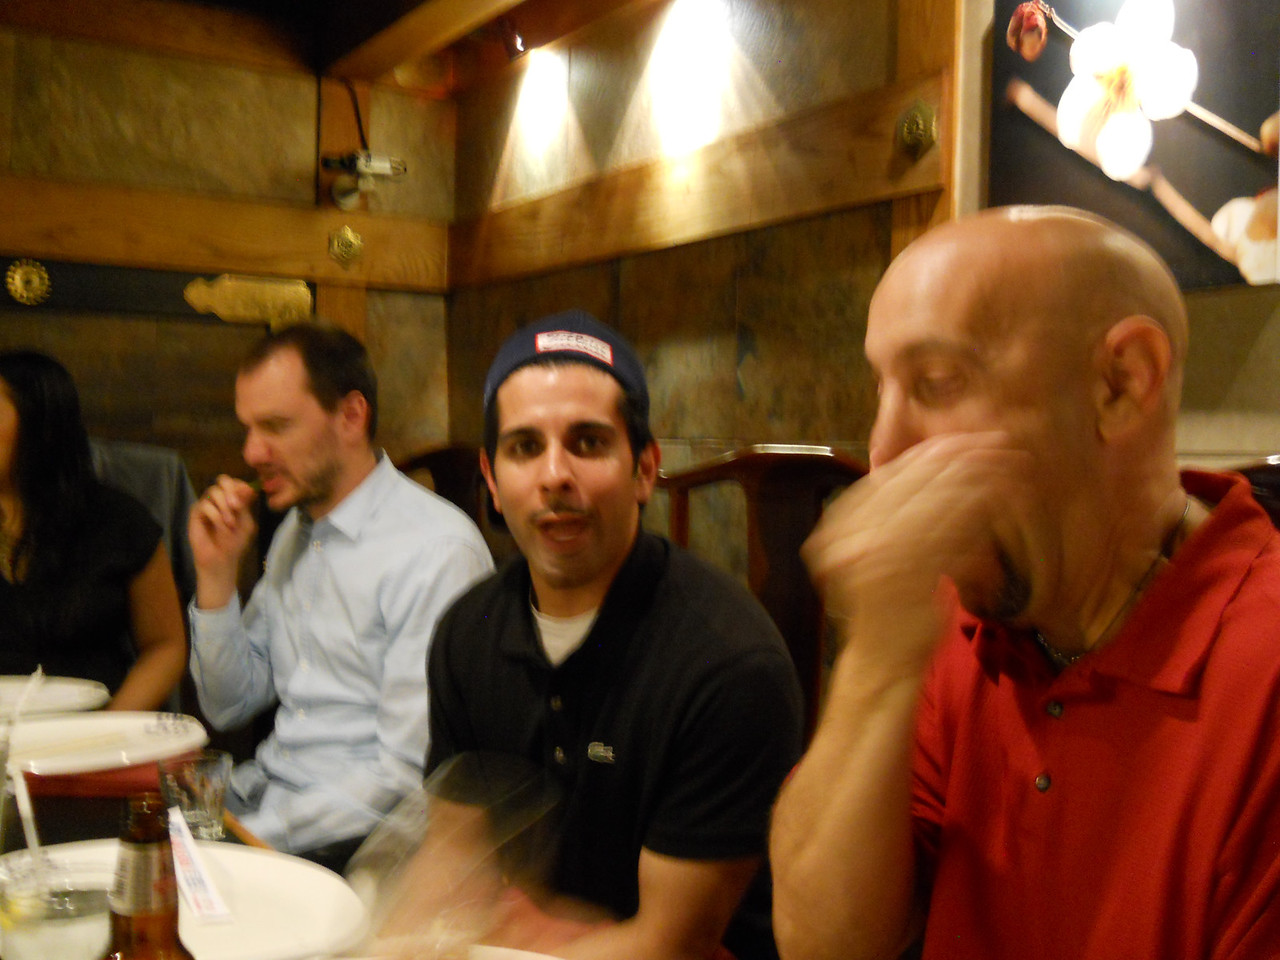 Mike's best man, Nassar (in black shirt), his groomsman, Jim (in red shirt) and the other guy is Darlene's boyfriend (Leonie's sister)